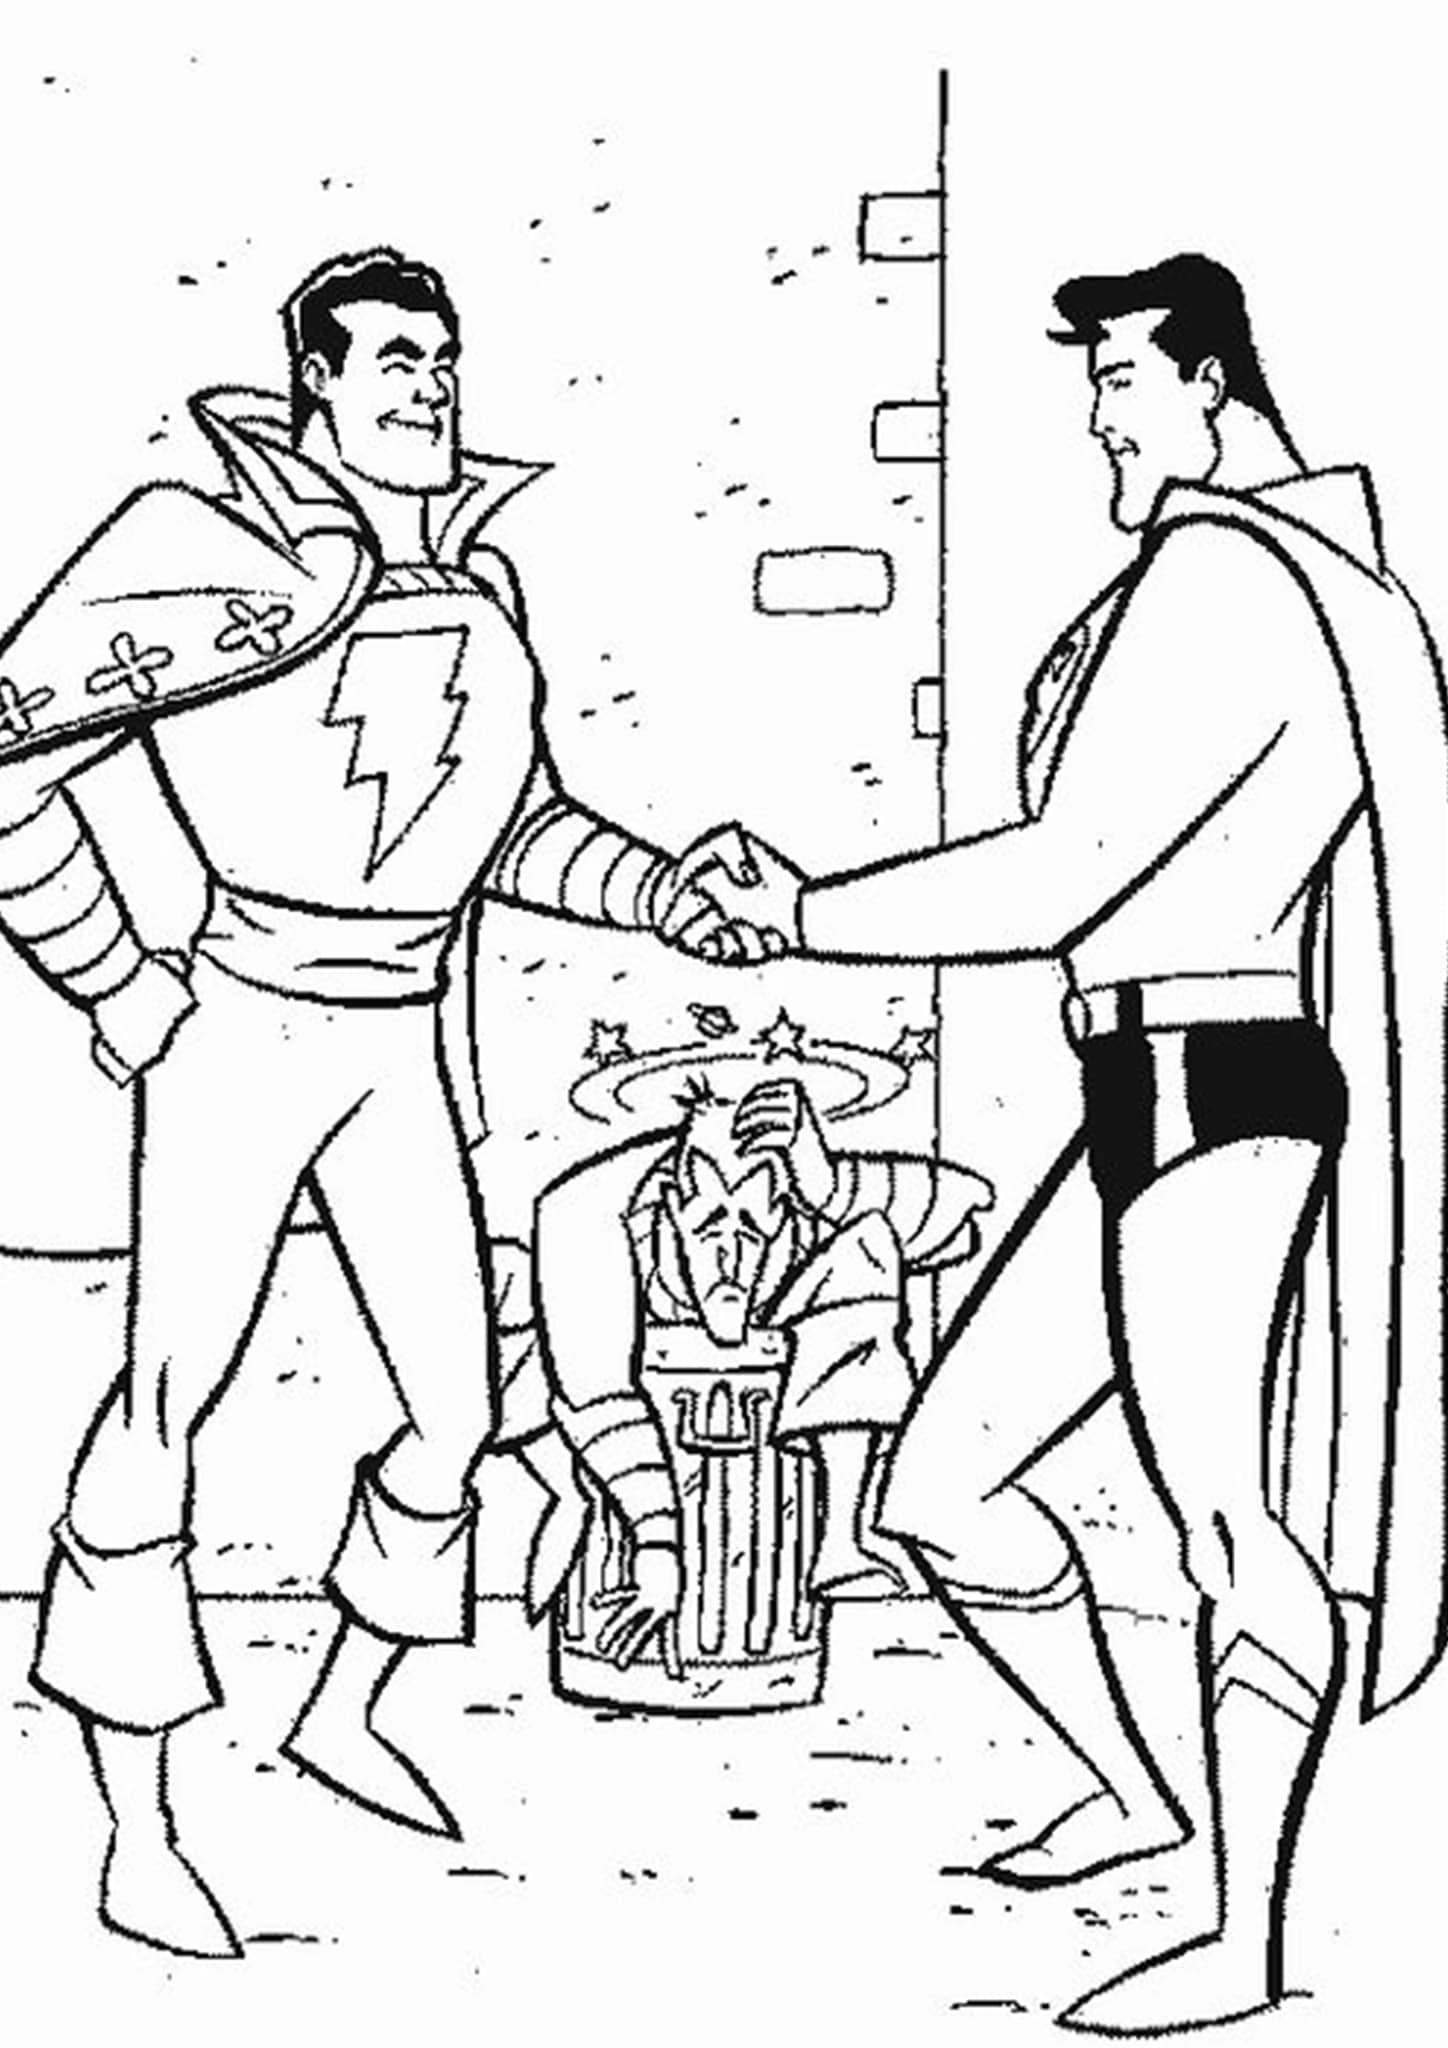 🎨 Free Superman 0f02 - Kizi Free 2020 Printable Coloring Pages ... | 2048x1448